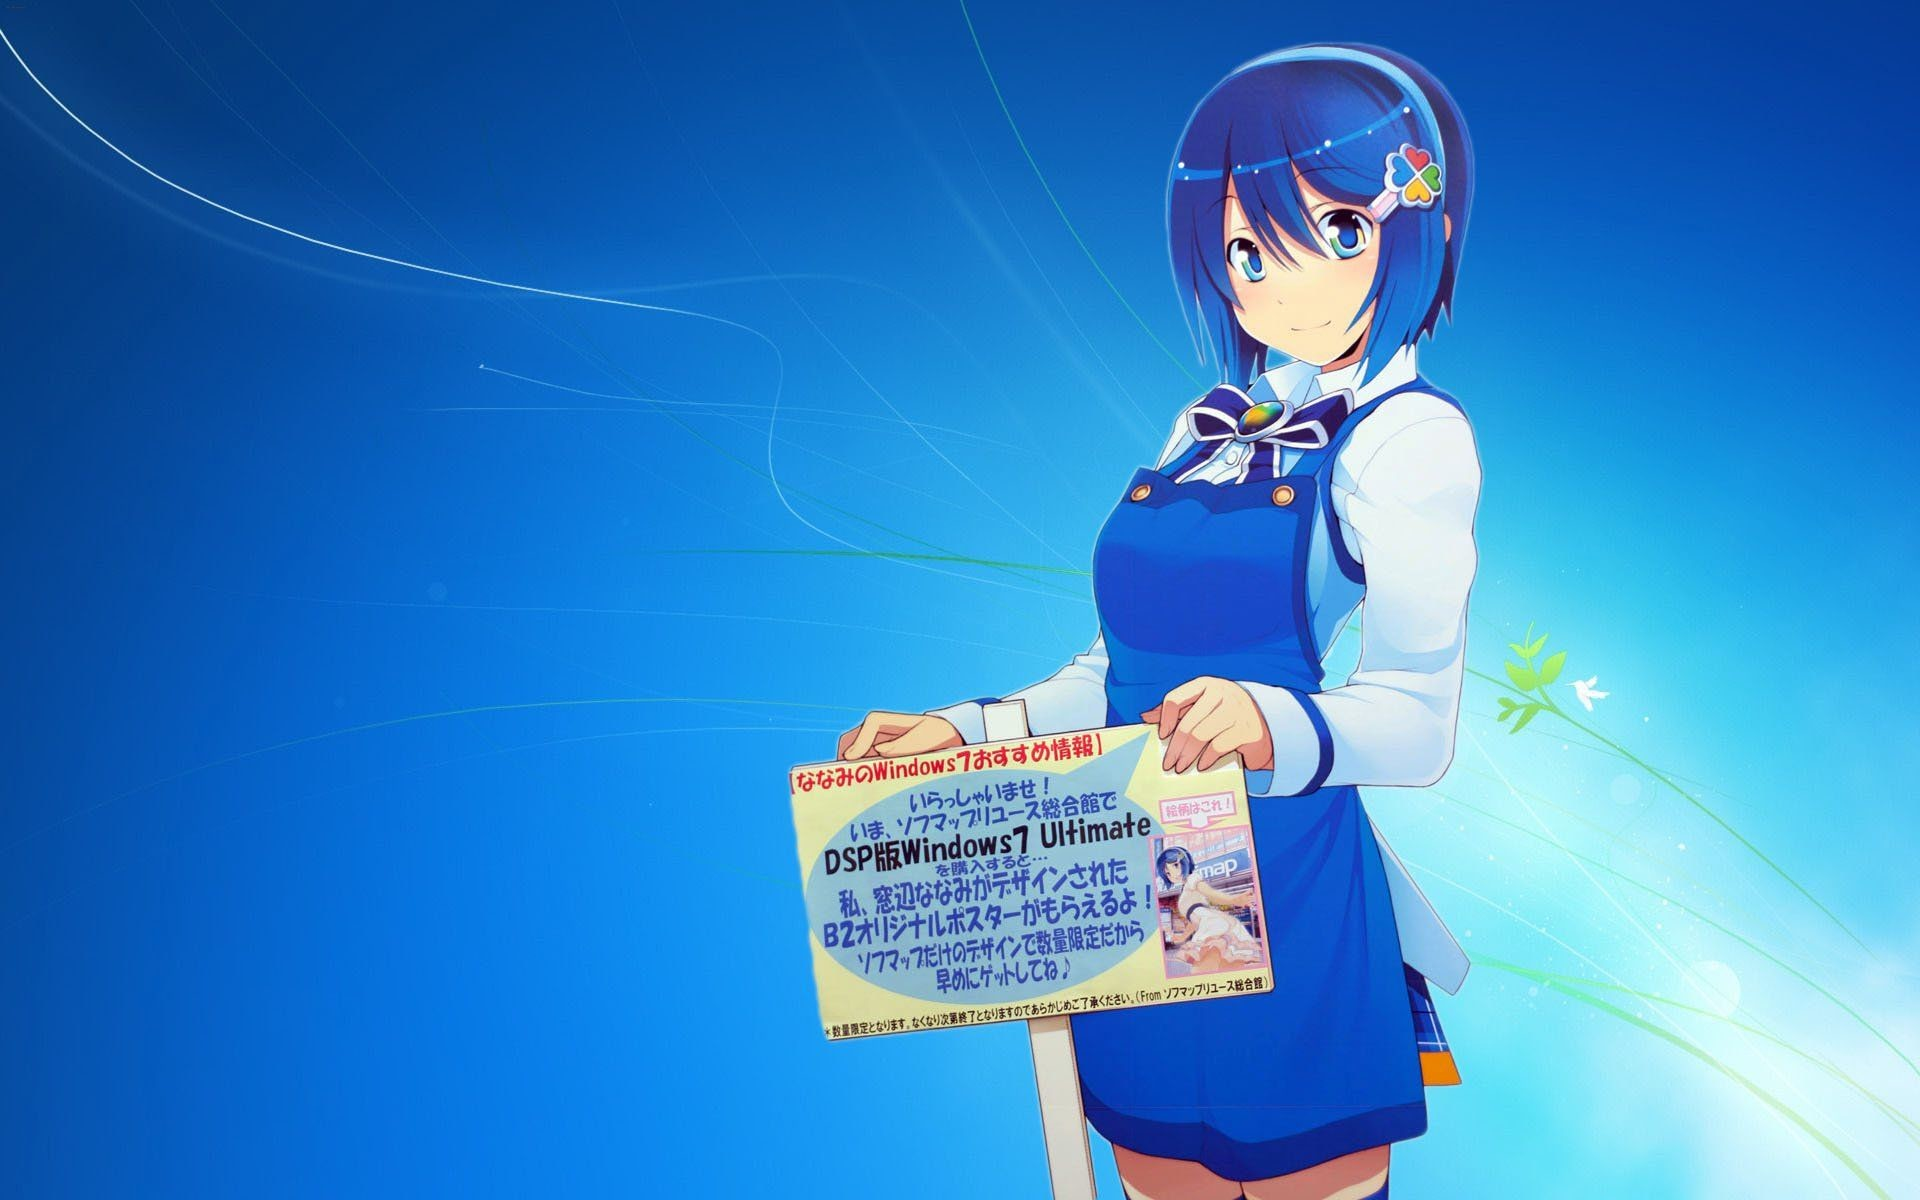 Res: 1920x1200, Windows-7-Anime-Wallpaper-Galerie-(39-Plus)-PIC-WPW4010872